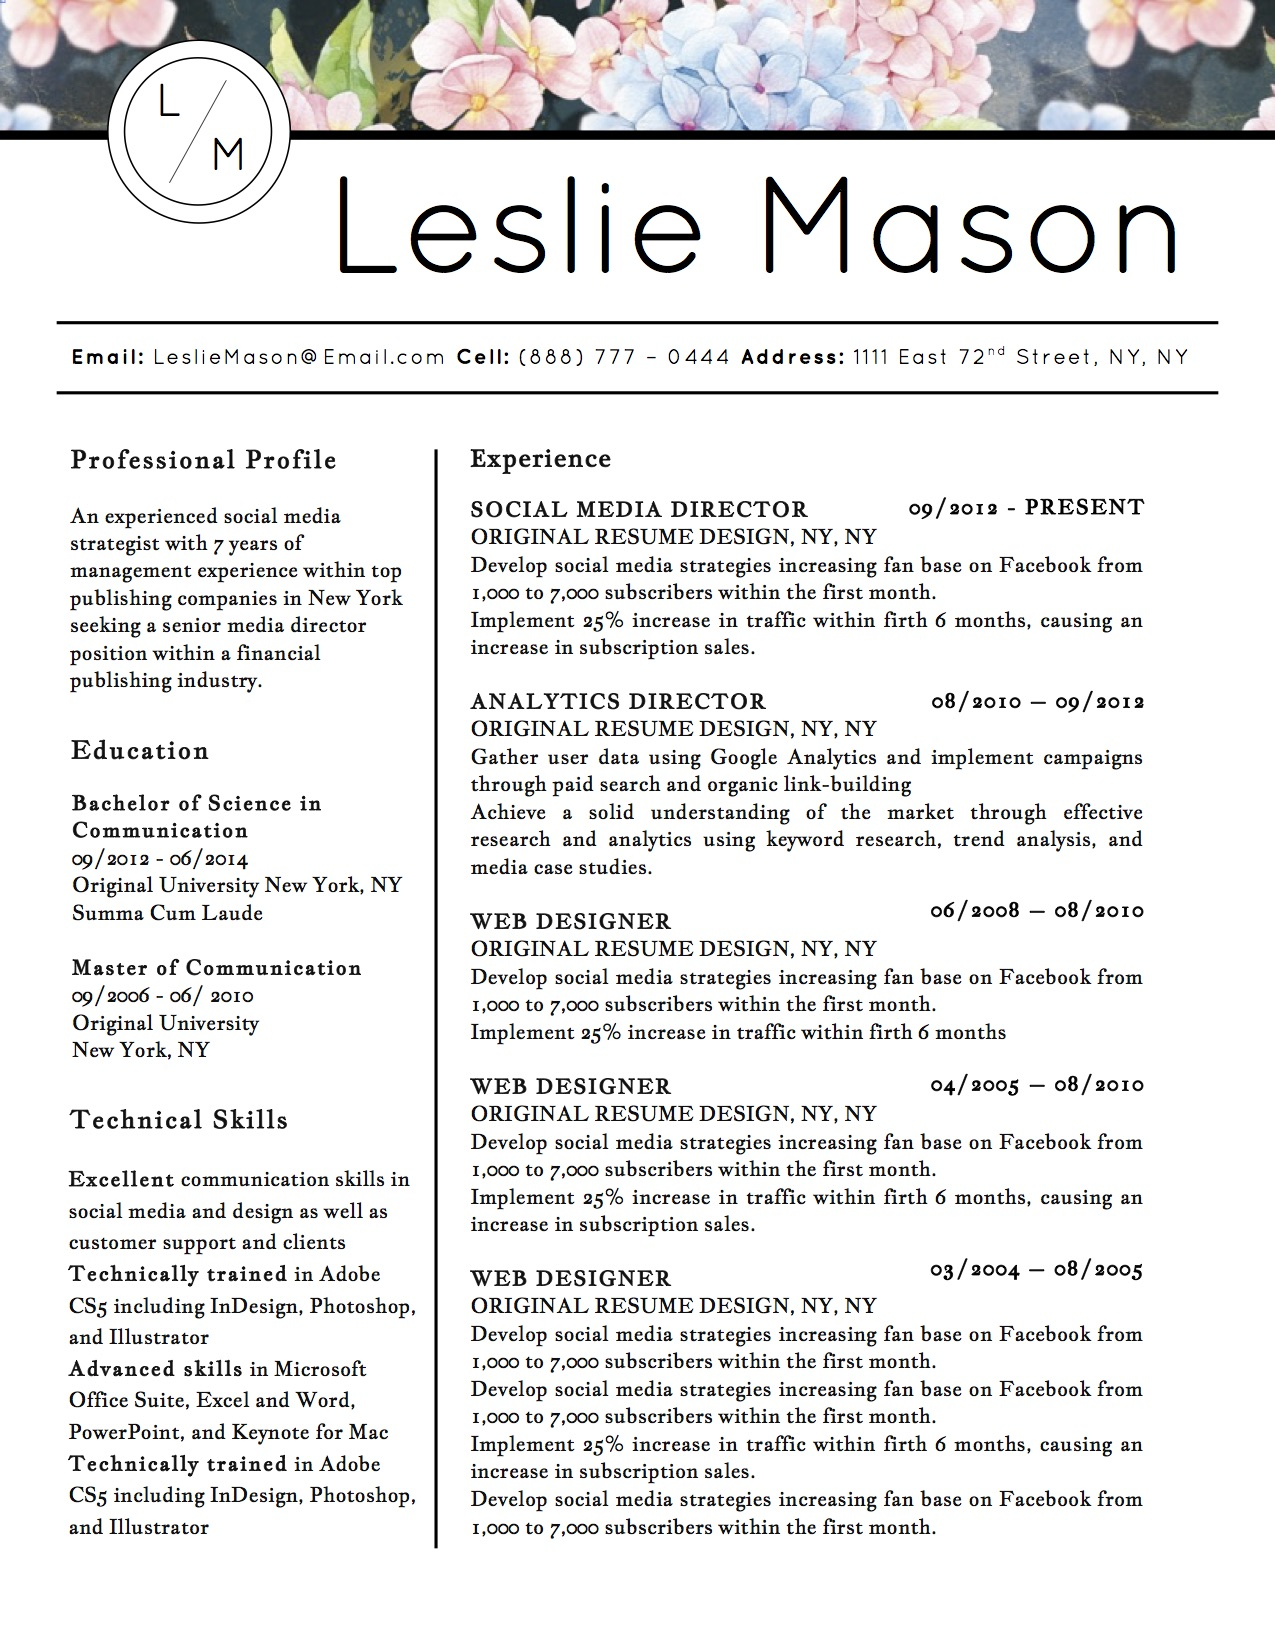 leslie mason downloadable resume cover template and cover letter template for microsoft word and apple - Winning Resume Template